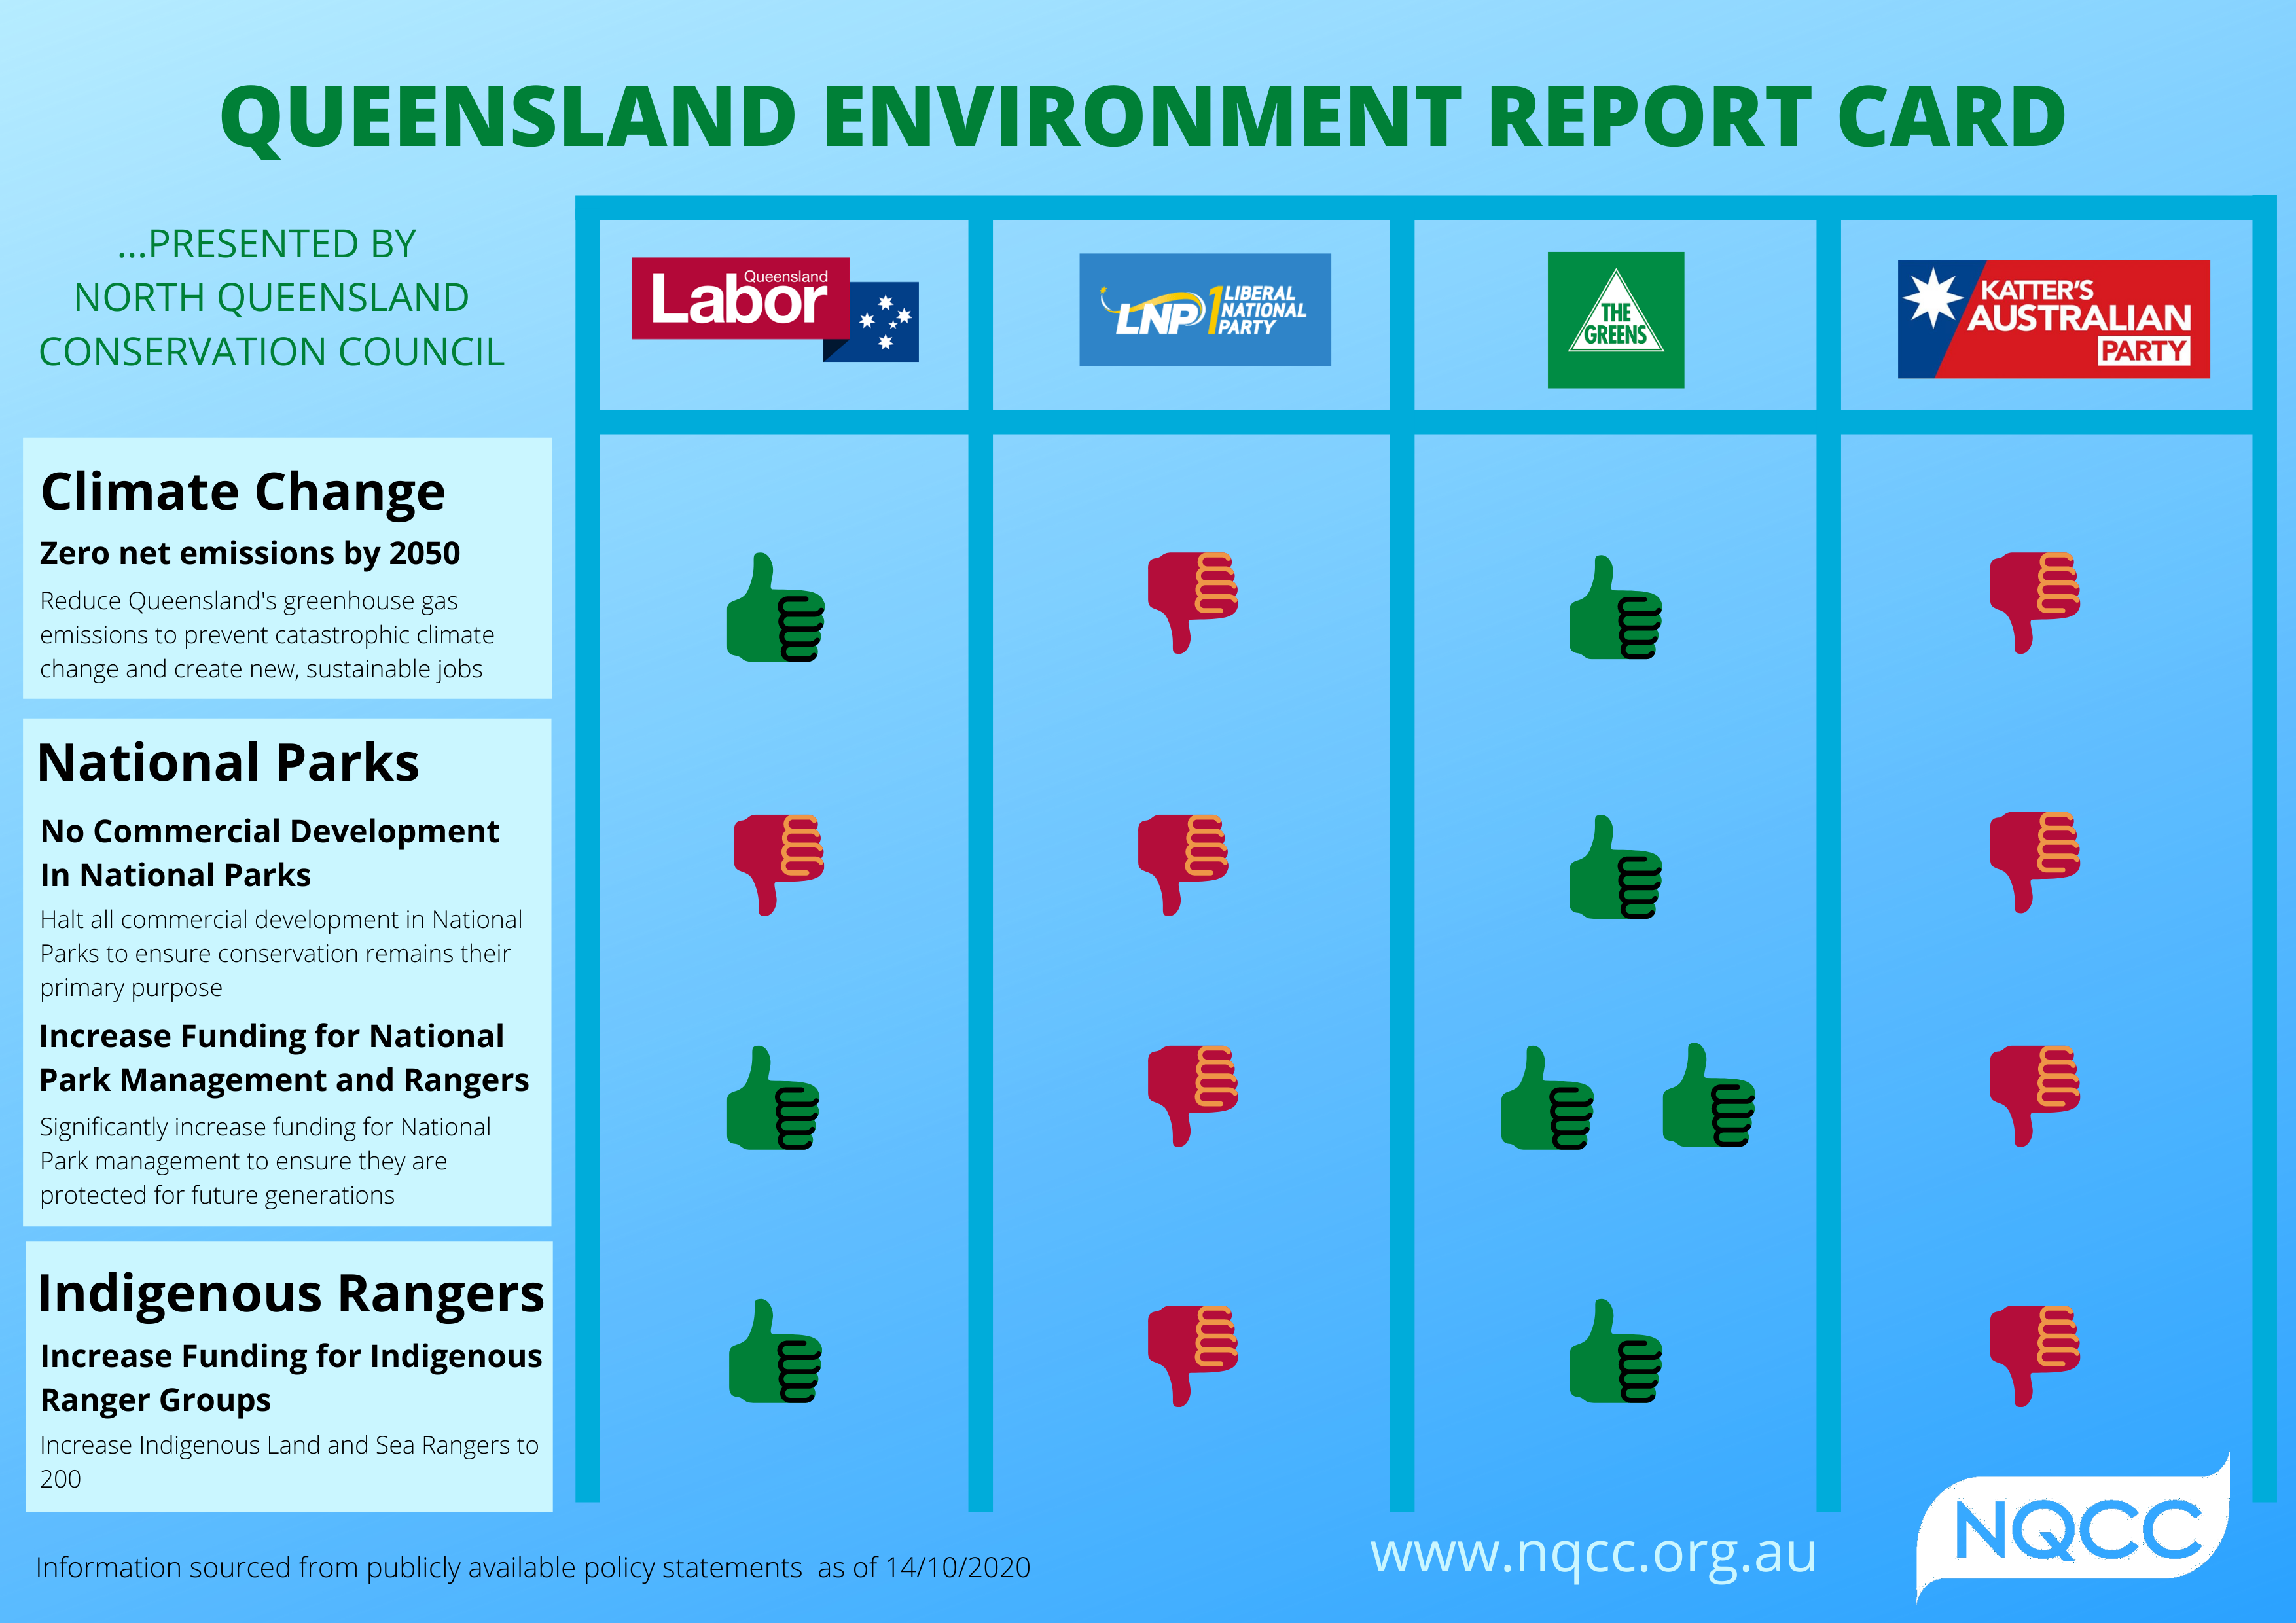 Environment Report Card